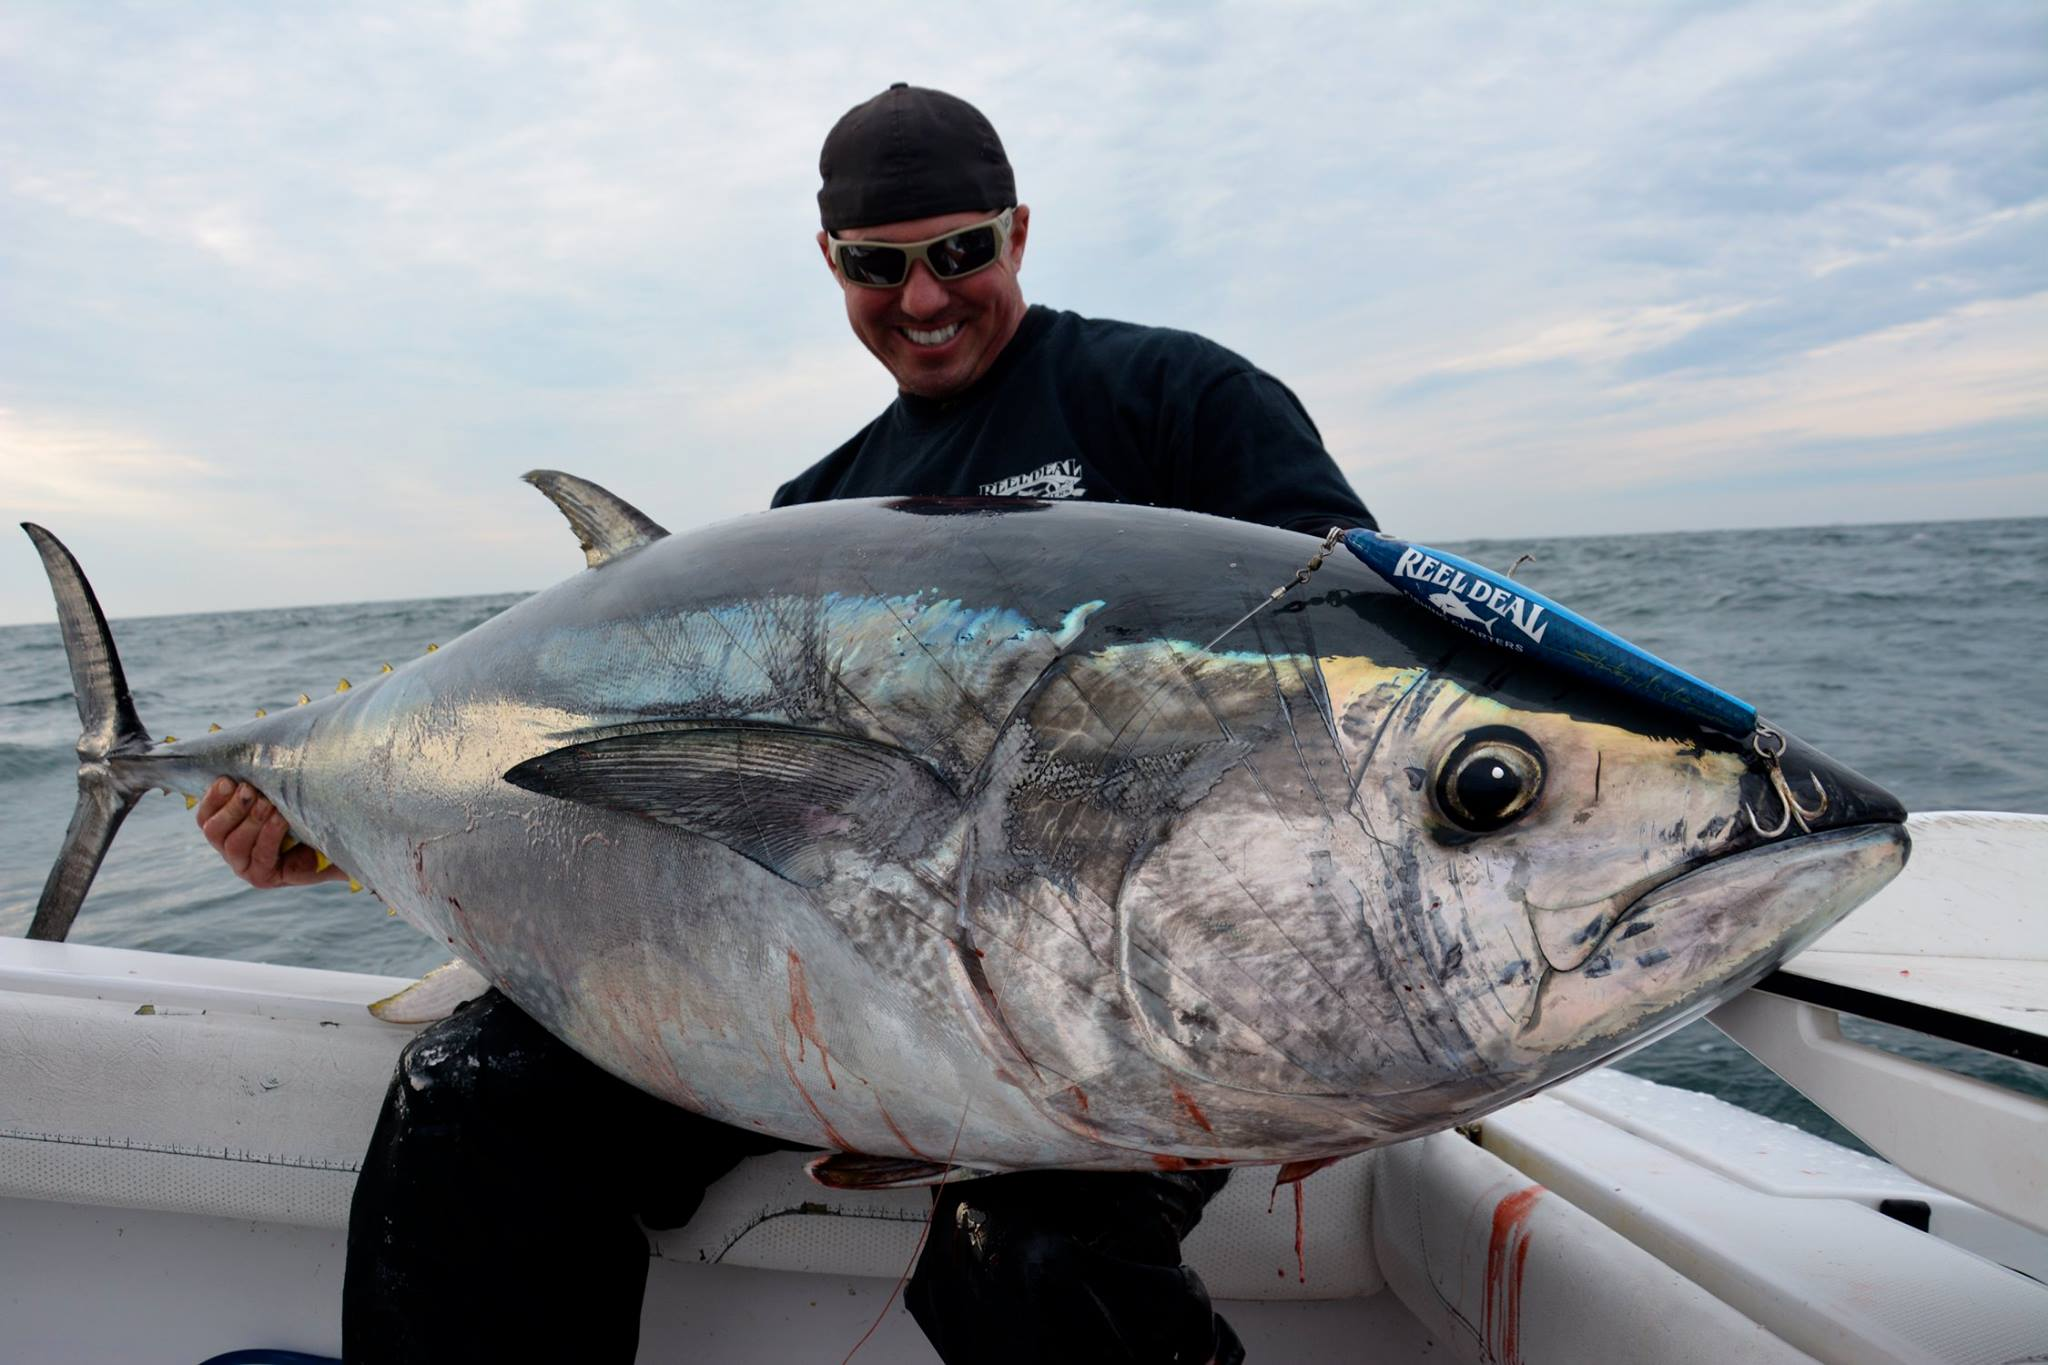 Reel Deal charters shared this photo of Capt. Mike Wisniewski with a topwater bluefin tuna caught this week.